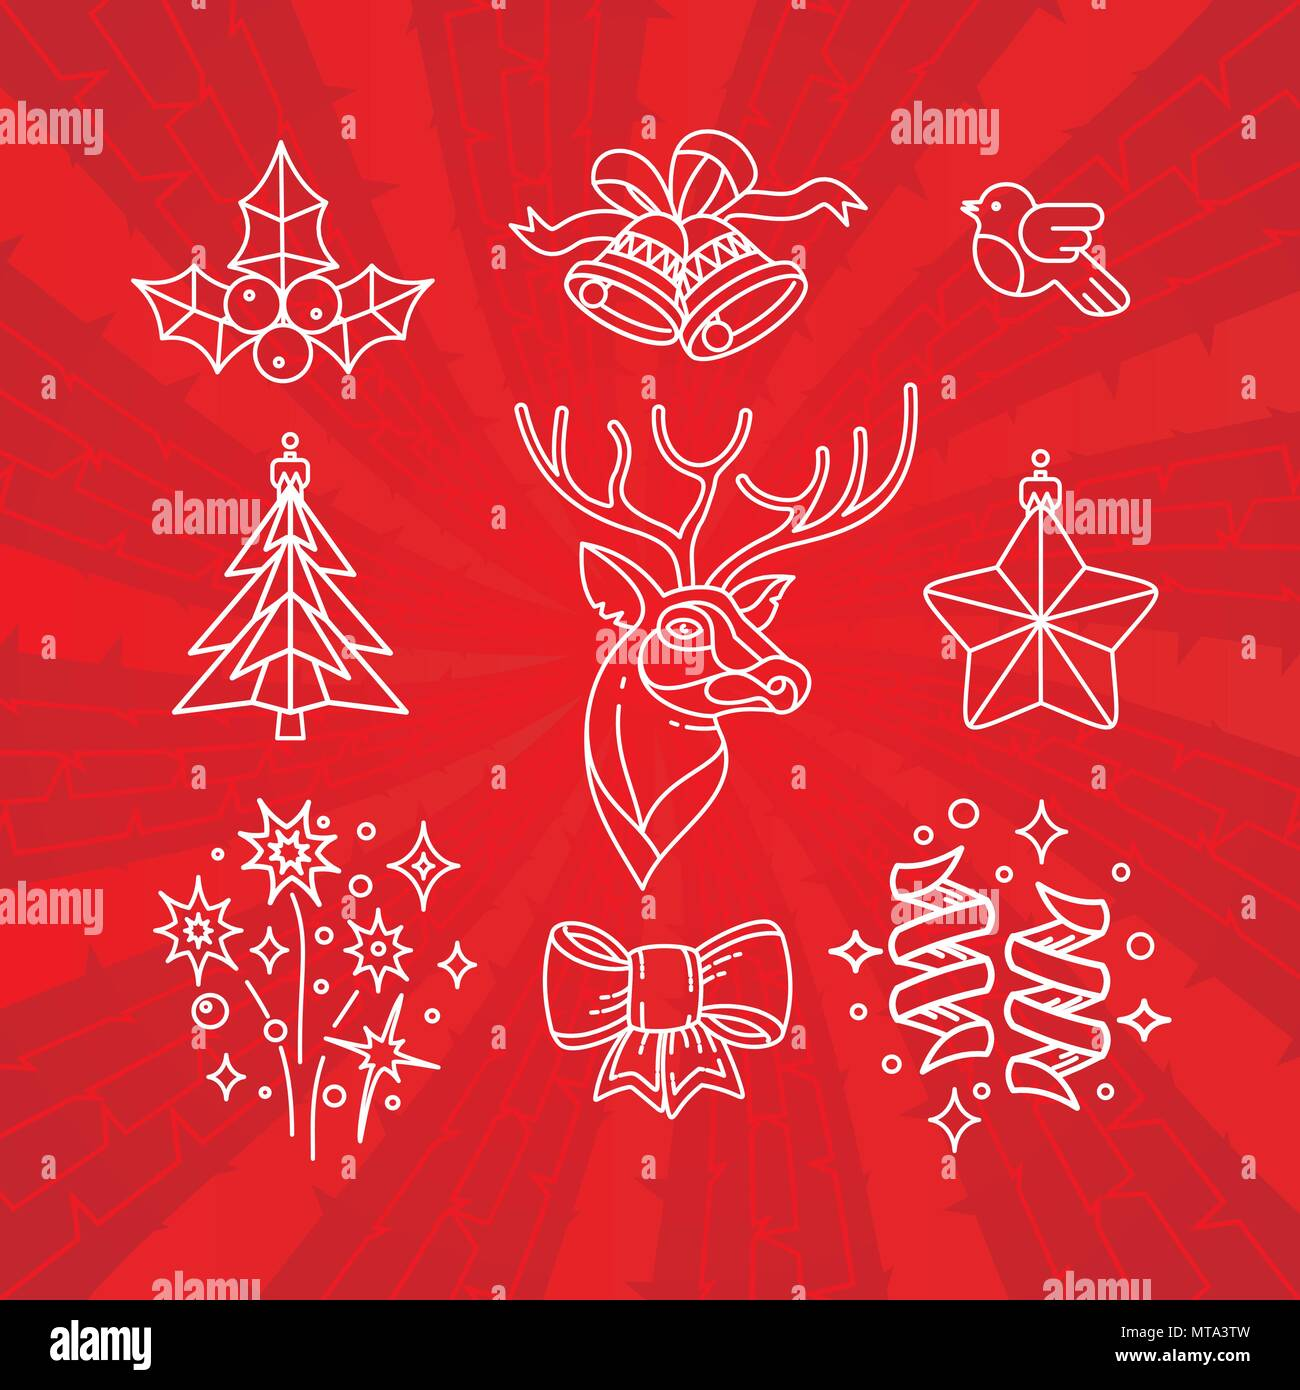 Winter Holiday Banners Pinterest Fashion Banners